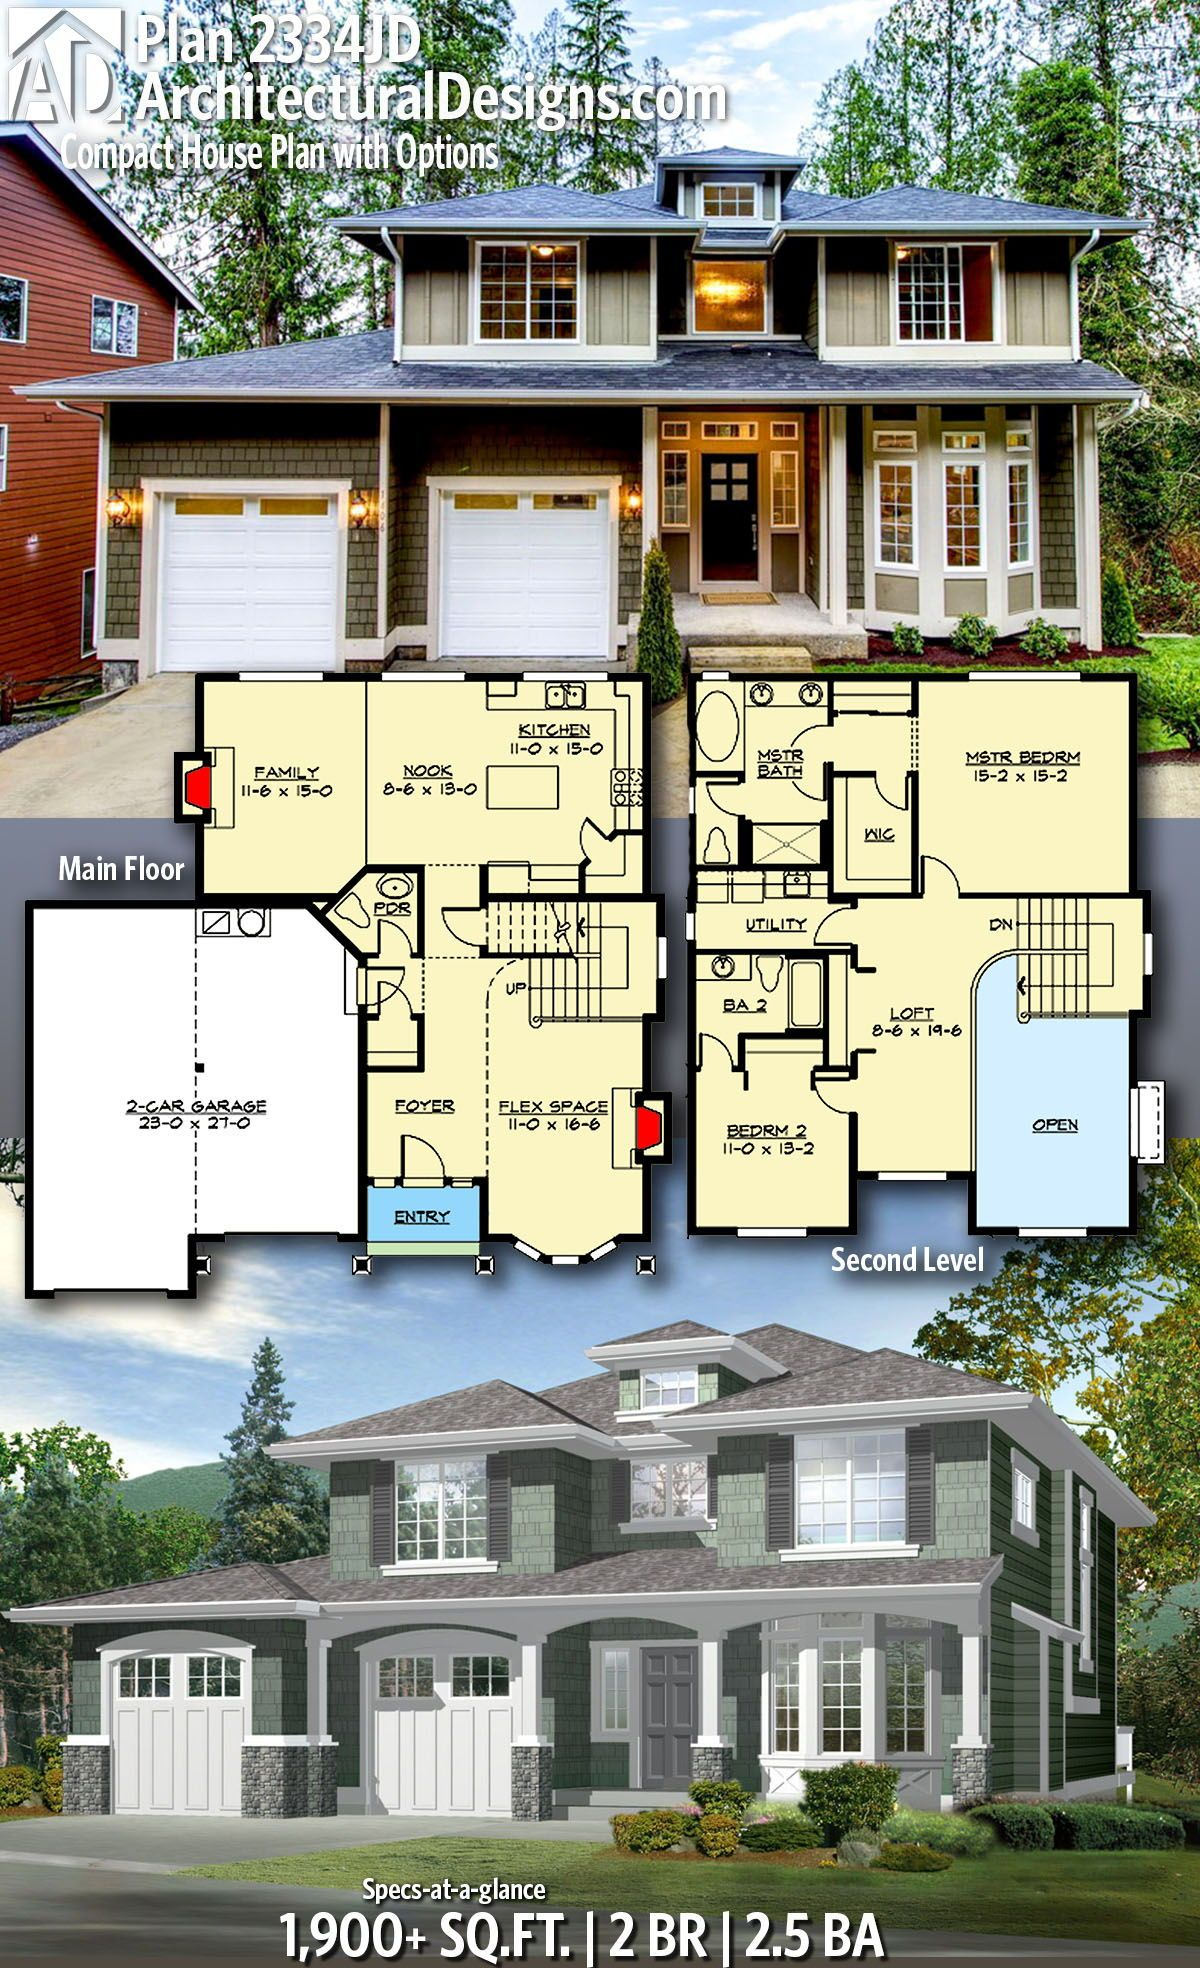 Plan 2334jd Compact House Plan With Options House Plans